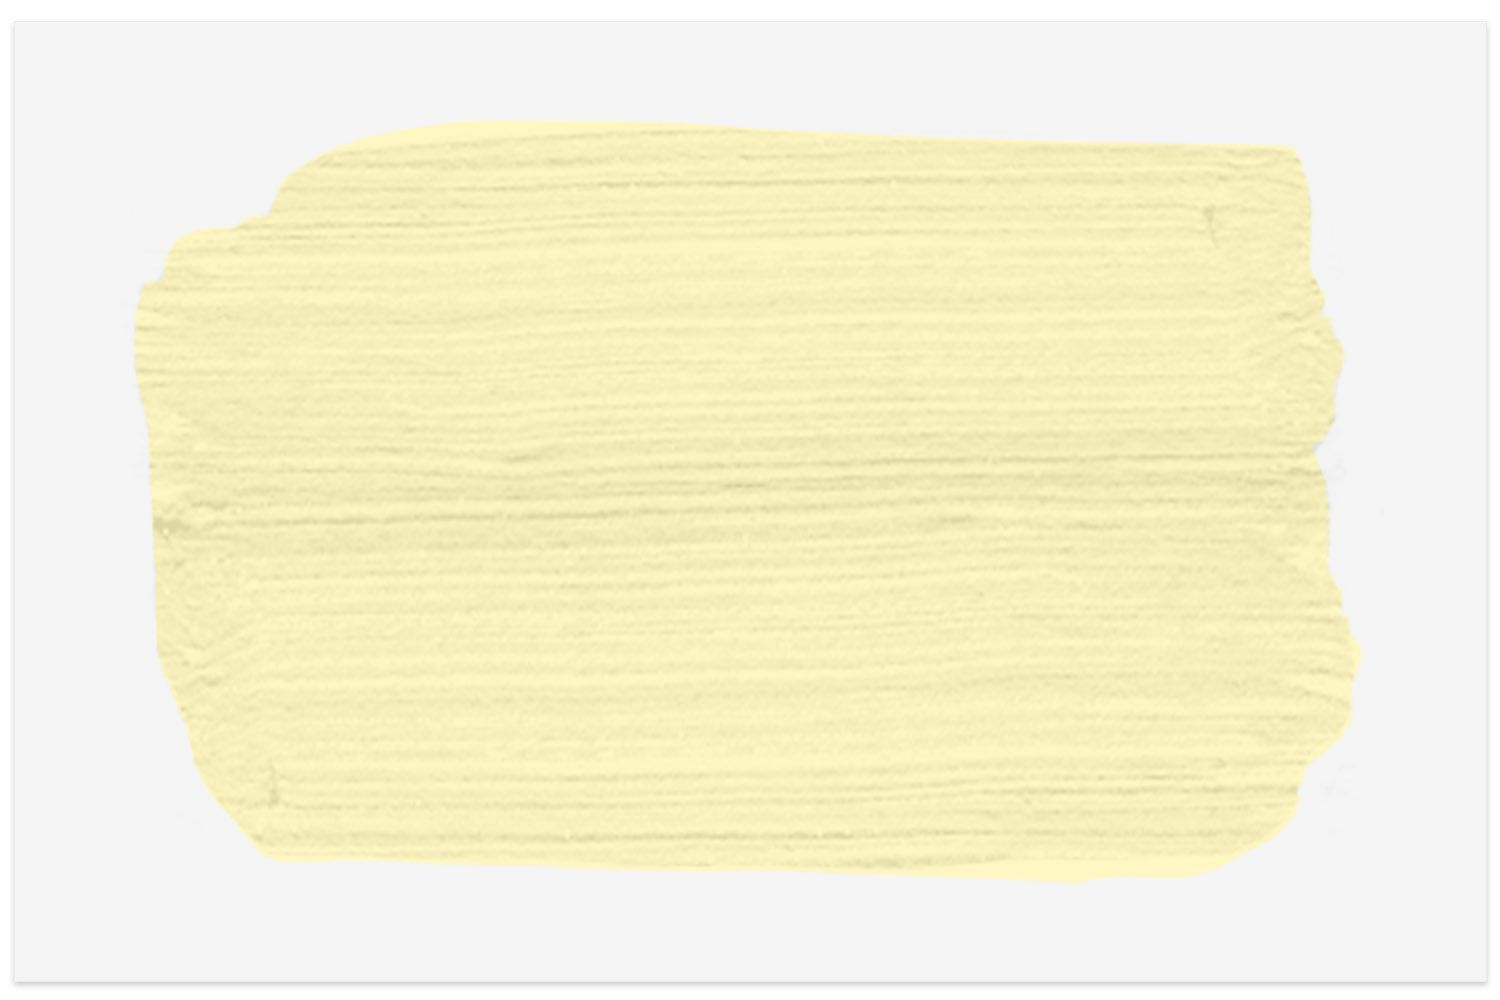 Accessories to a Yellow House paint swatch